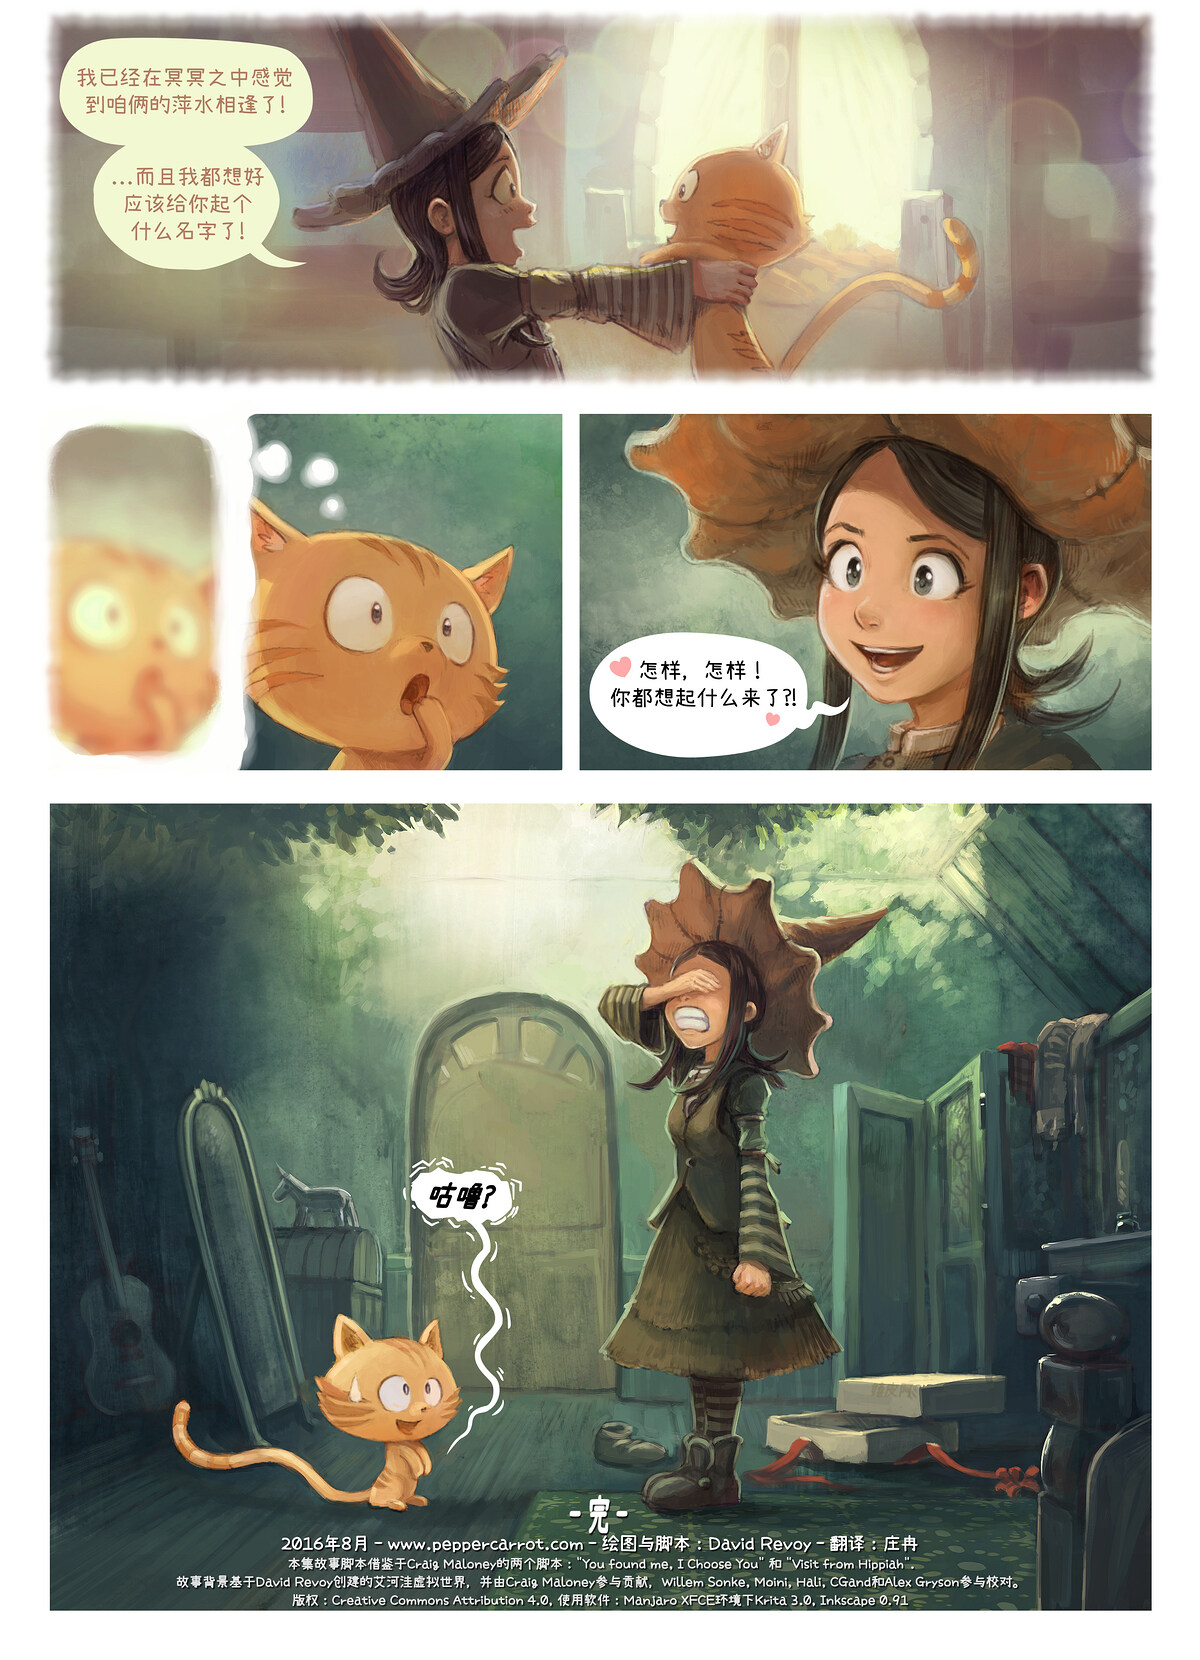 A webcomic page of Pepper&Carrot, 漫画全集 18 [cn], 页面 7